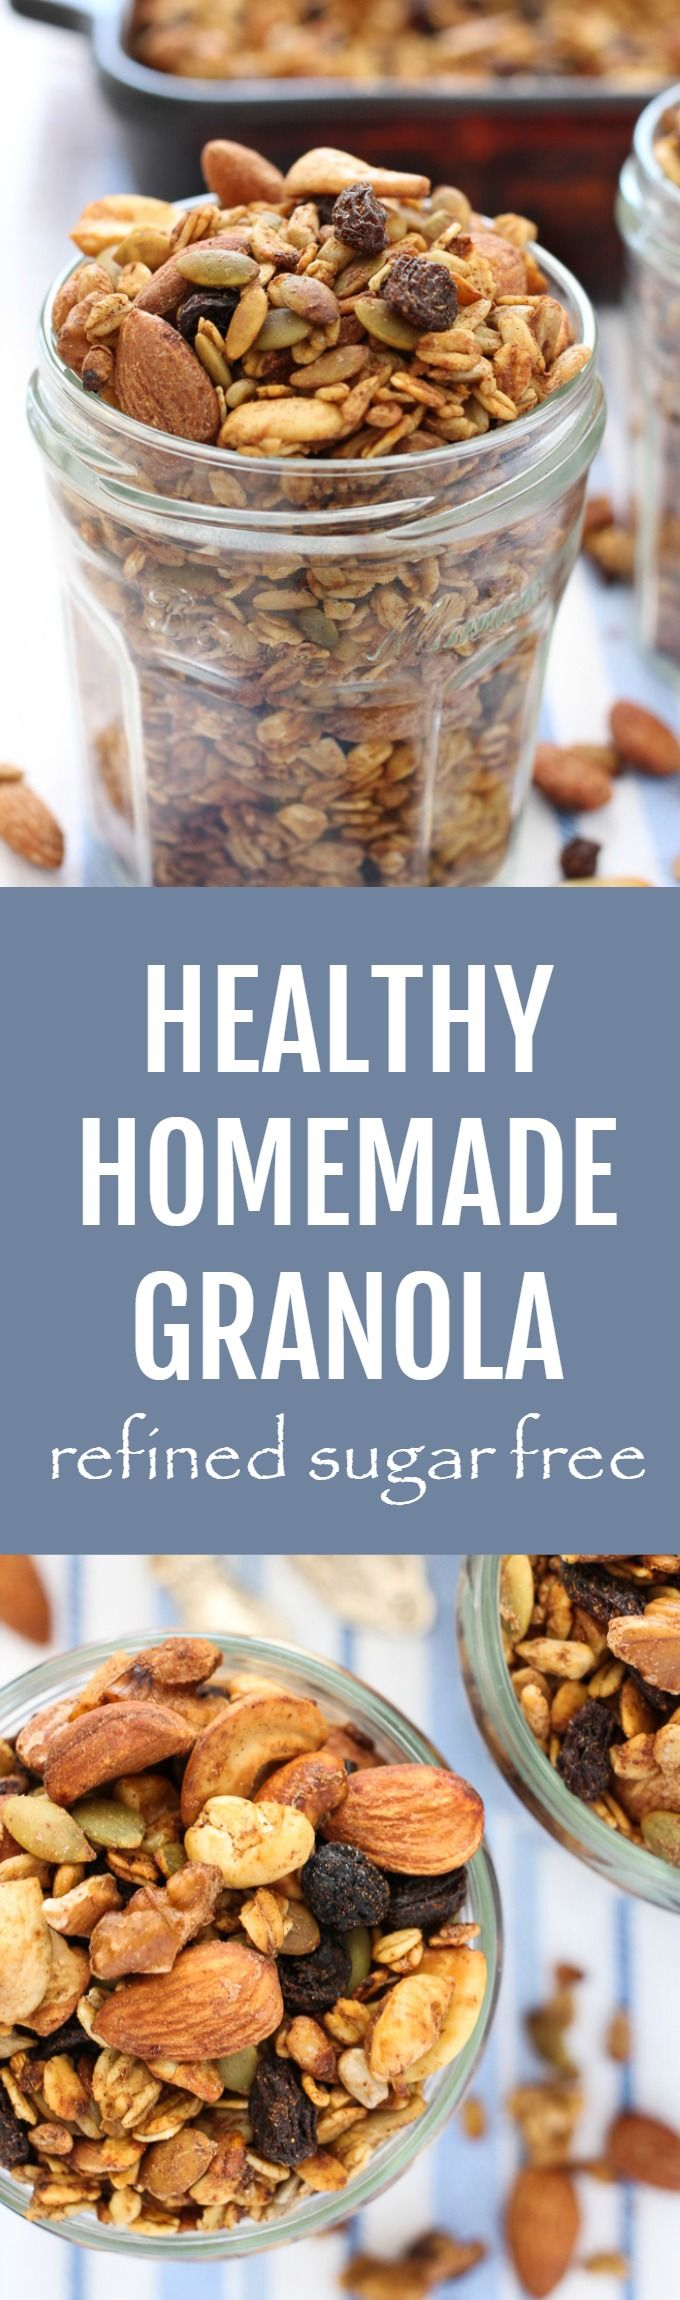 This healthy homemade granola is refined sugar free. It's made with nuts, seeds, oats, and coconut oil and is naturally sweetened with applesauce and raisins.